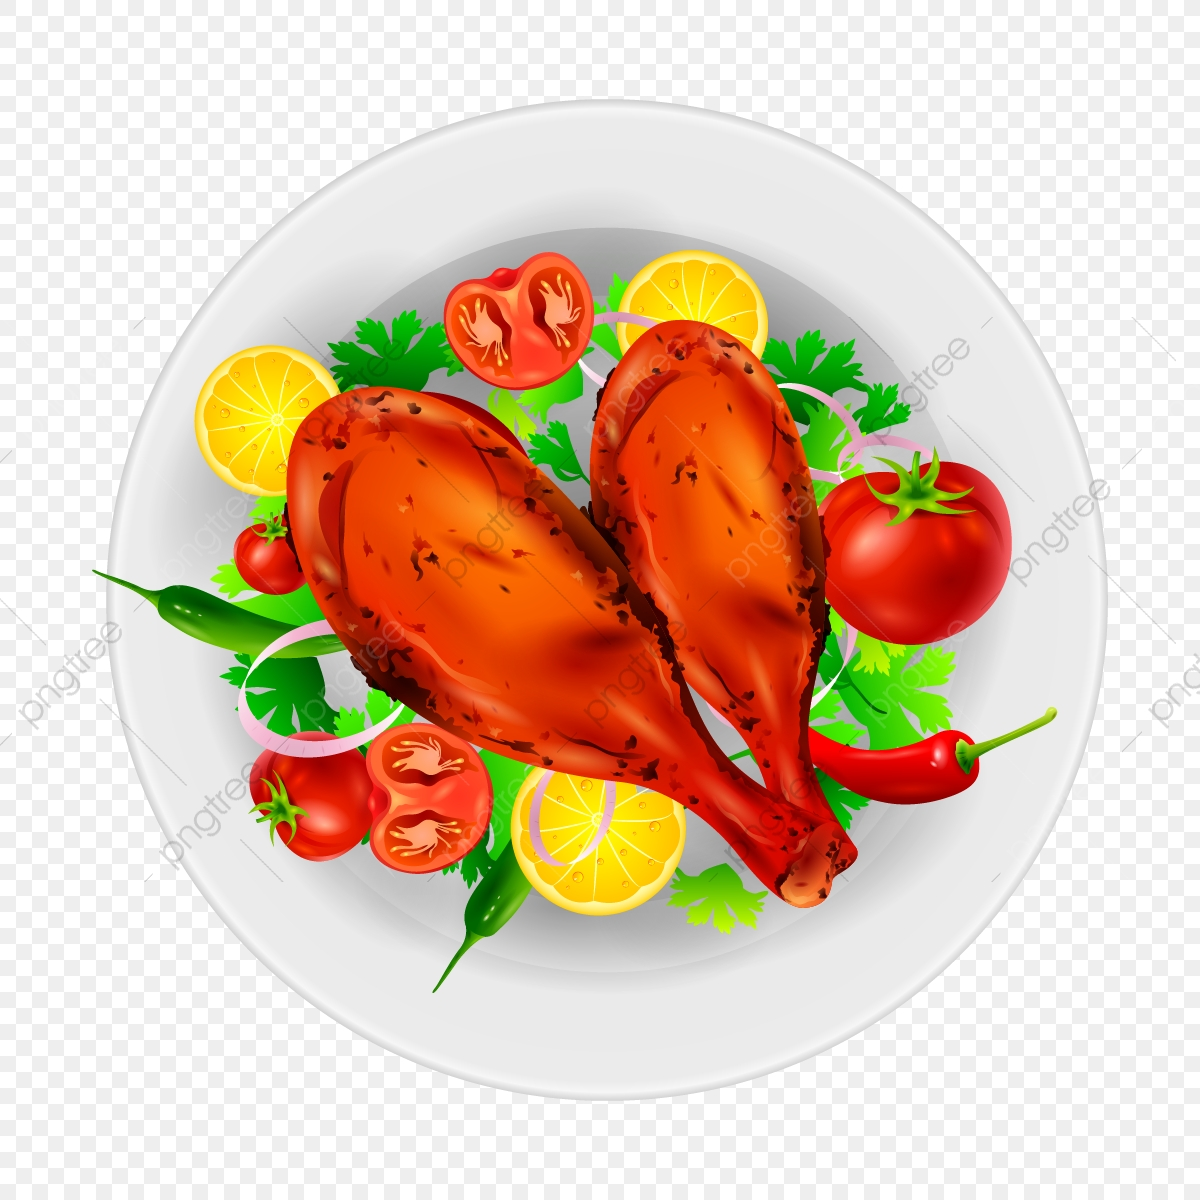 Meat clipart non veg food. With vegitables foods dish